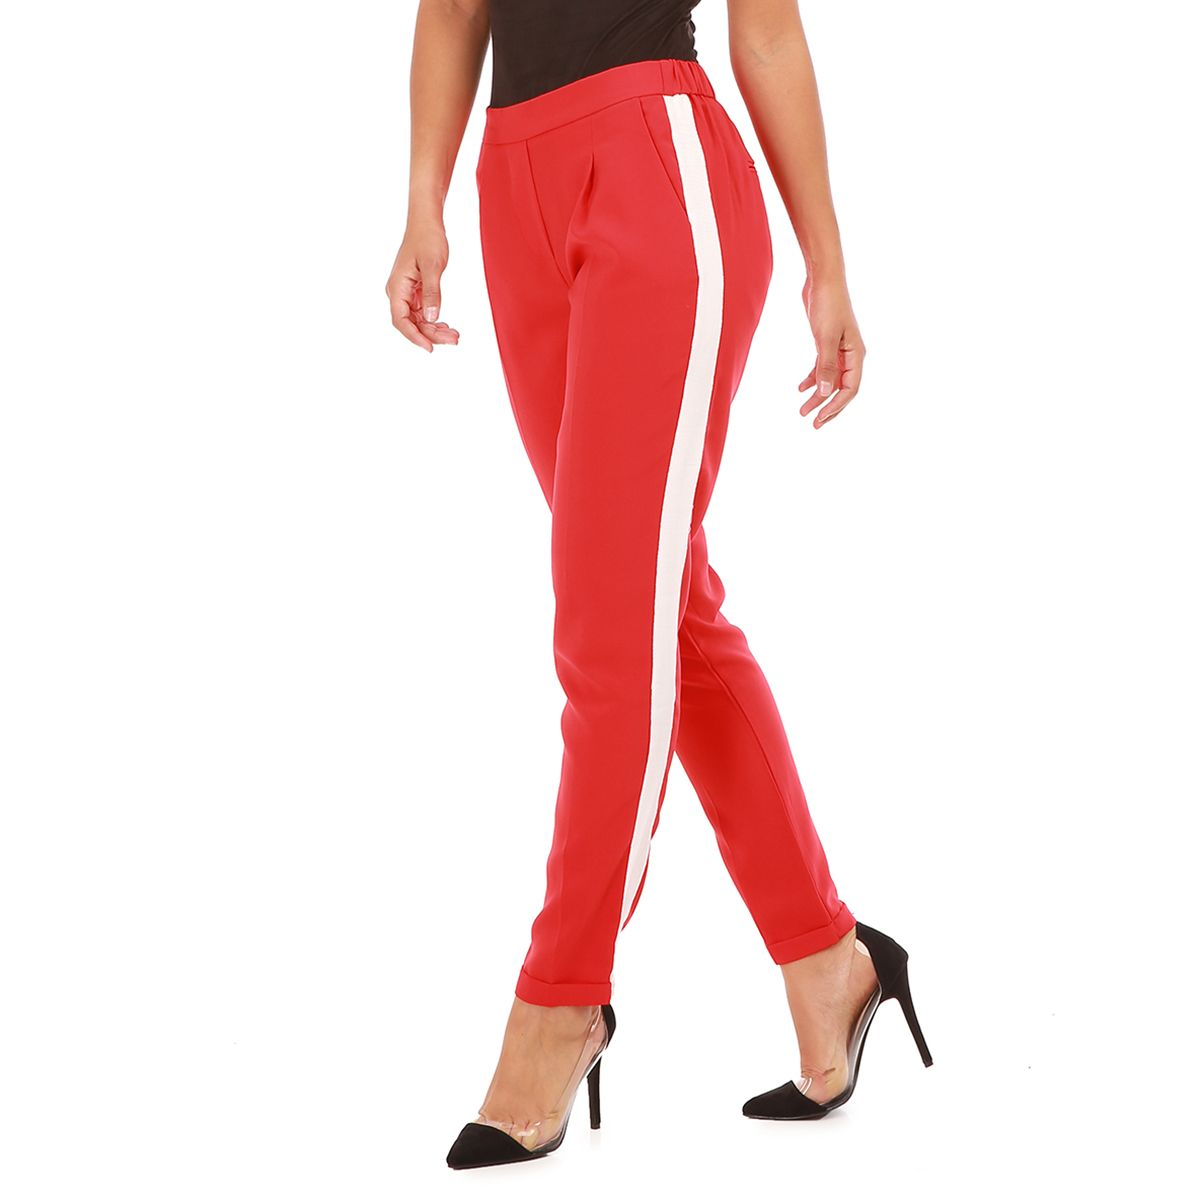 pantalon rouge style jogger une bande femme pas cher la modeuse. Black Bedroom Furniture Sets. Home Design Ideas